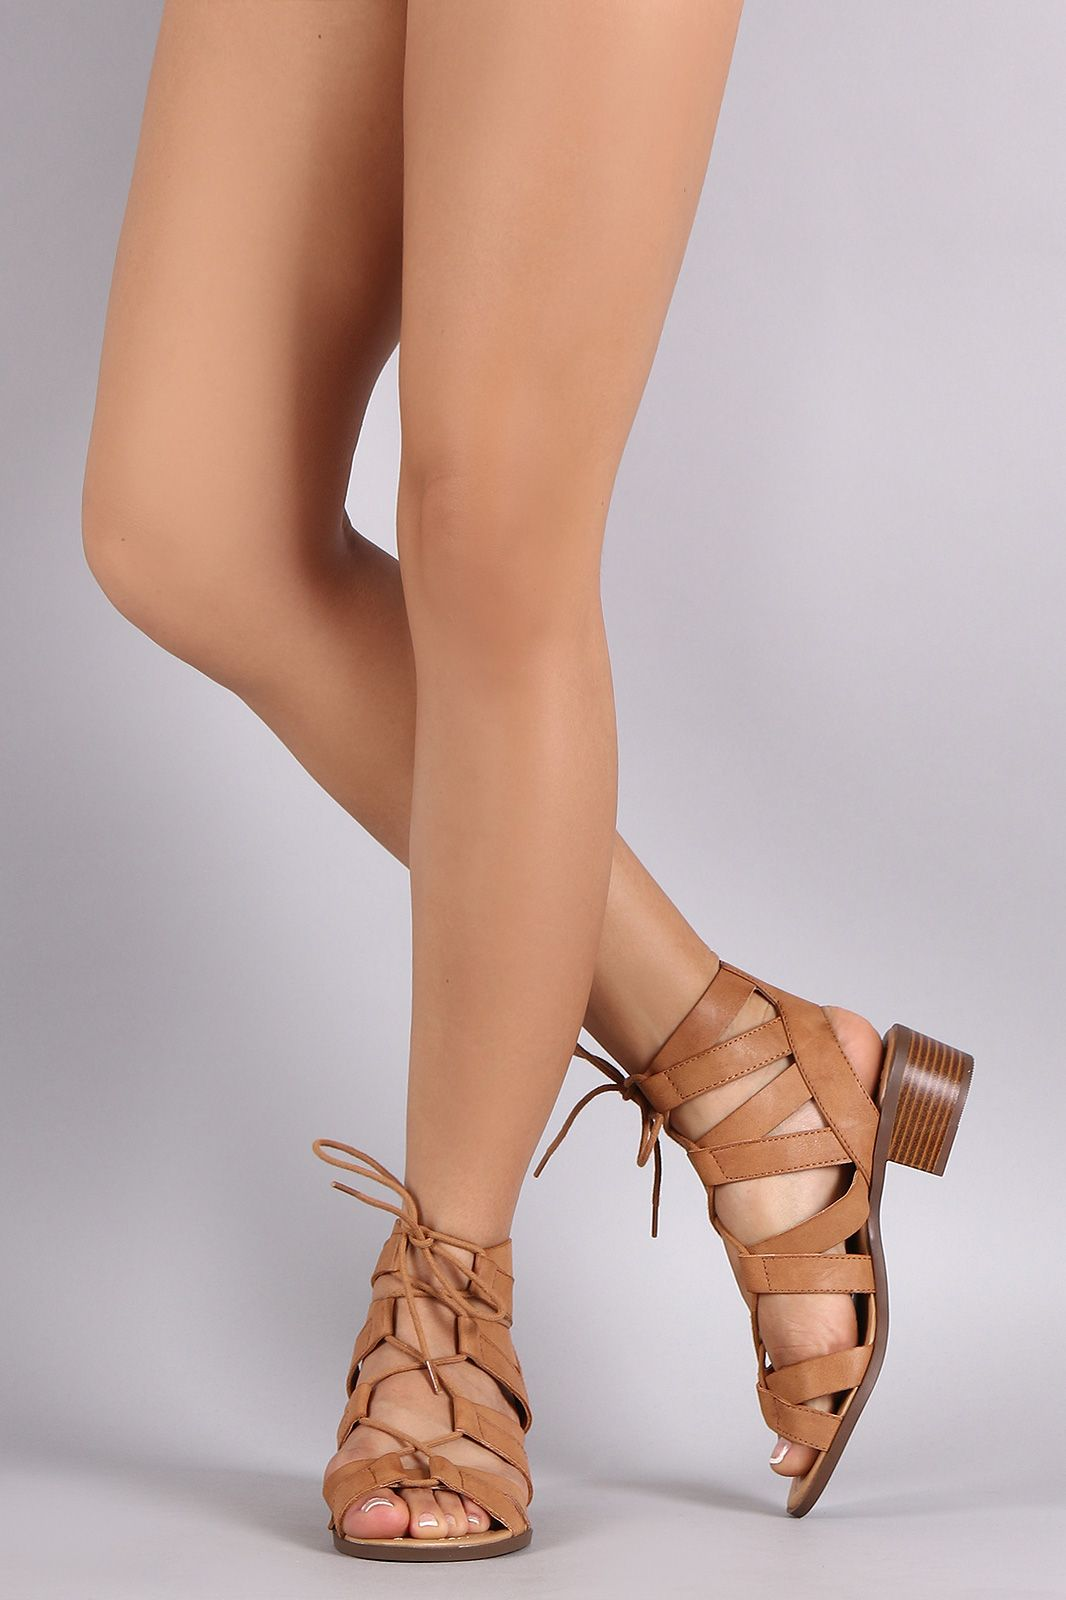 aa69393adcf Shop City Classified Strappy Lace Up Sandal. This edgy sandal features an  open toe